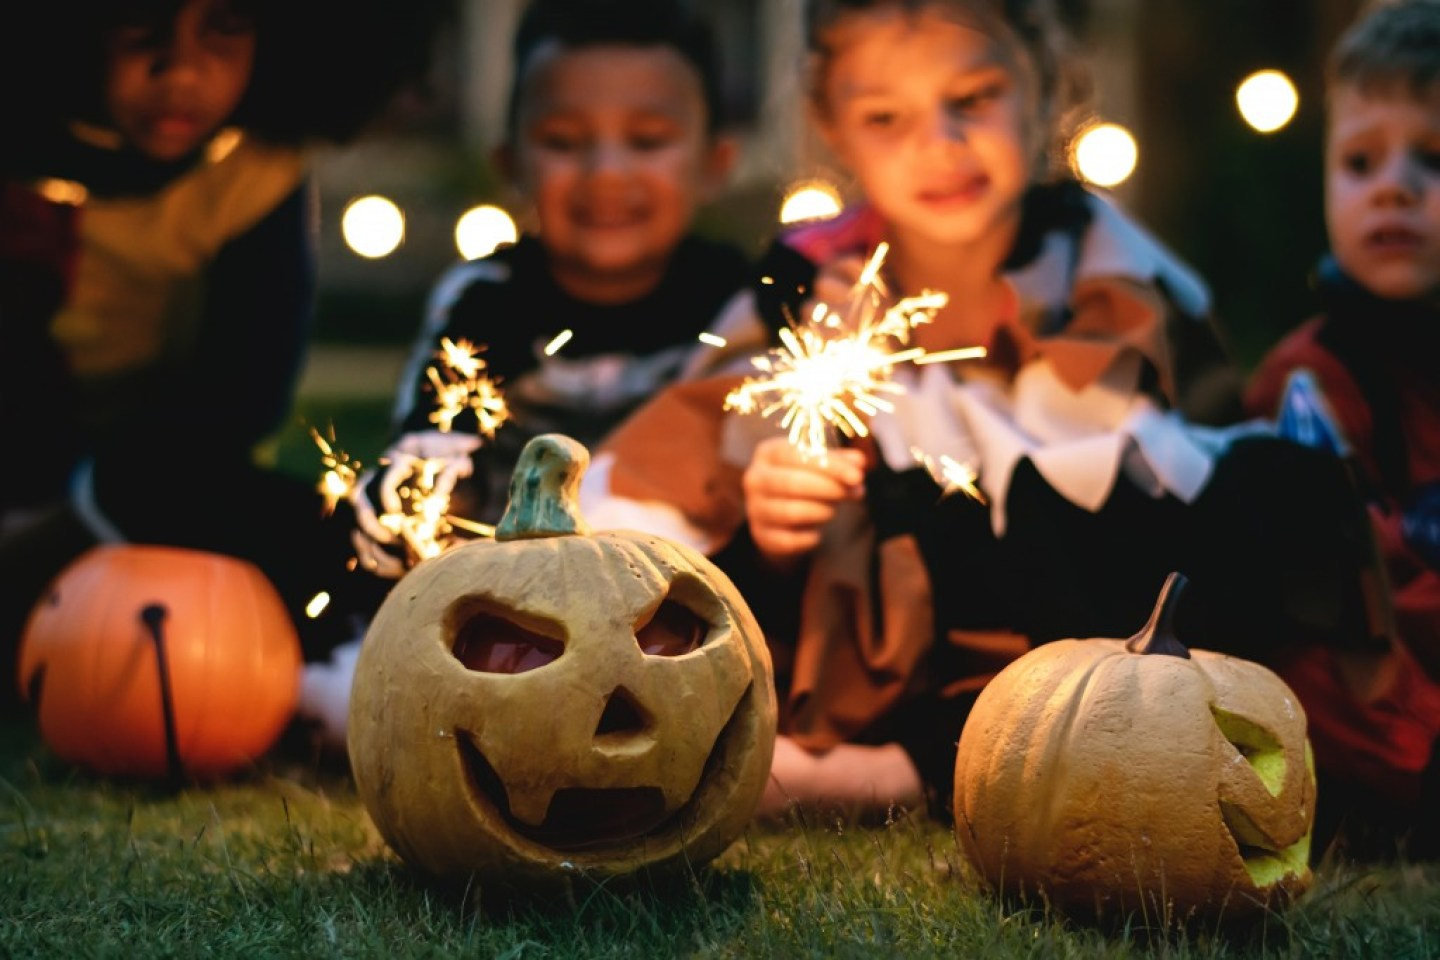 kids with sparklers looking at carved pumpkins